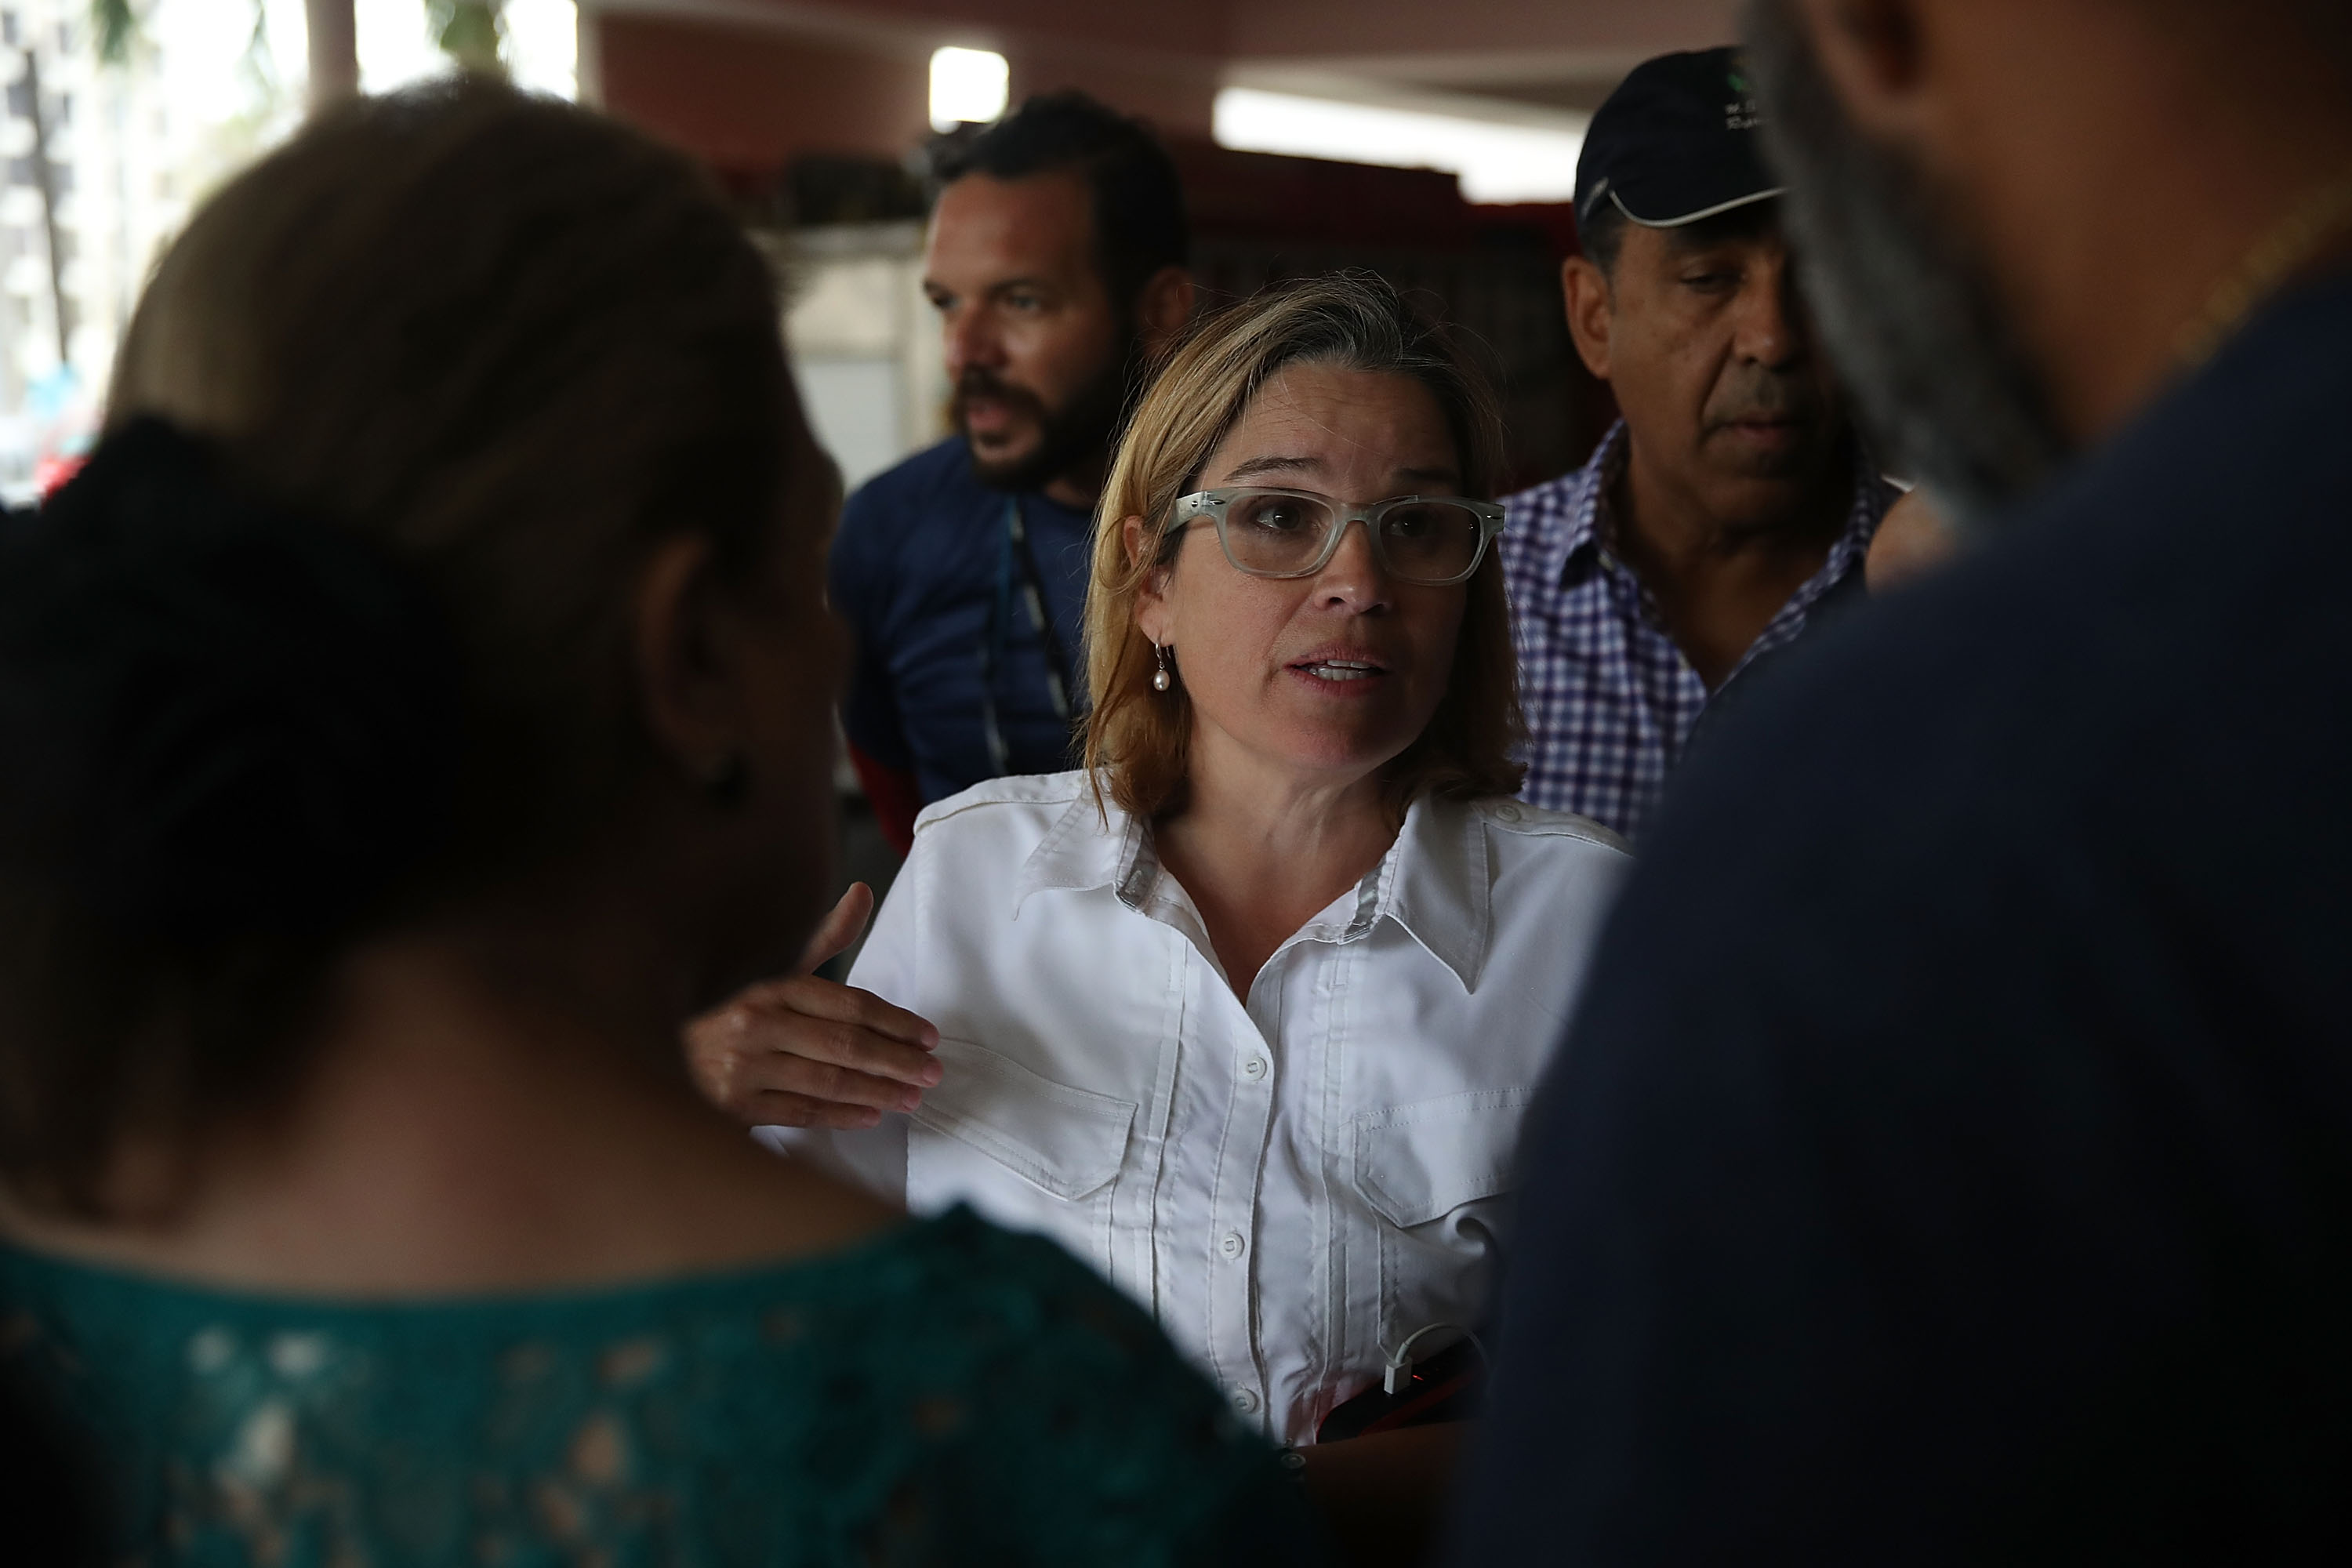 San Juan Mayor Carmen Yulin Cruz in the aftermath of Hurricane Maria on September 30, 2017 in San Juan, Puerto Rico.